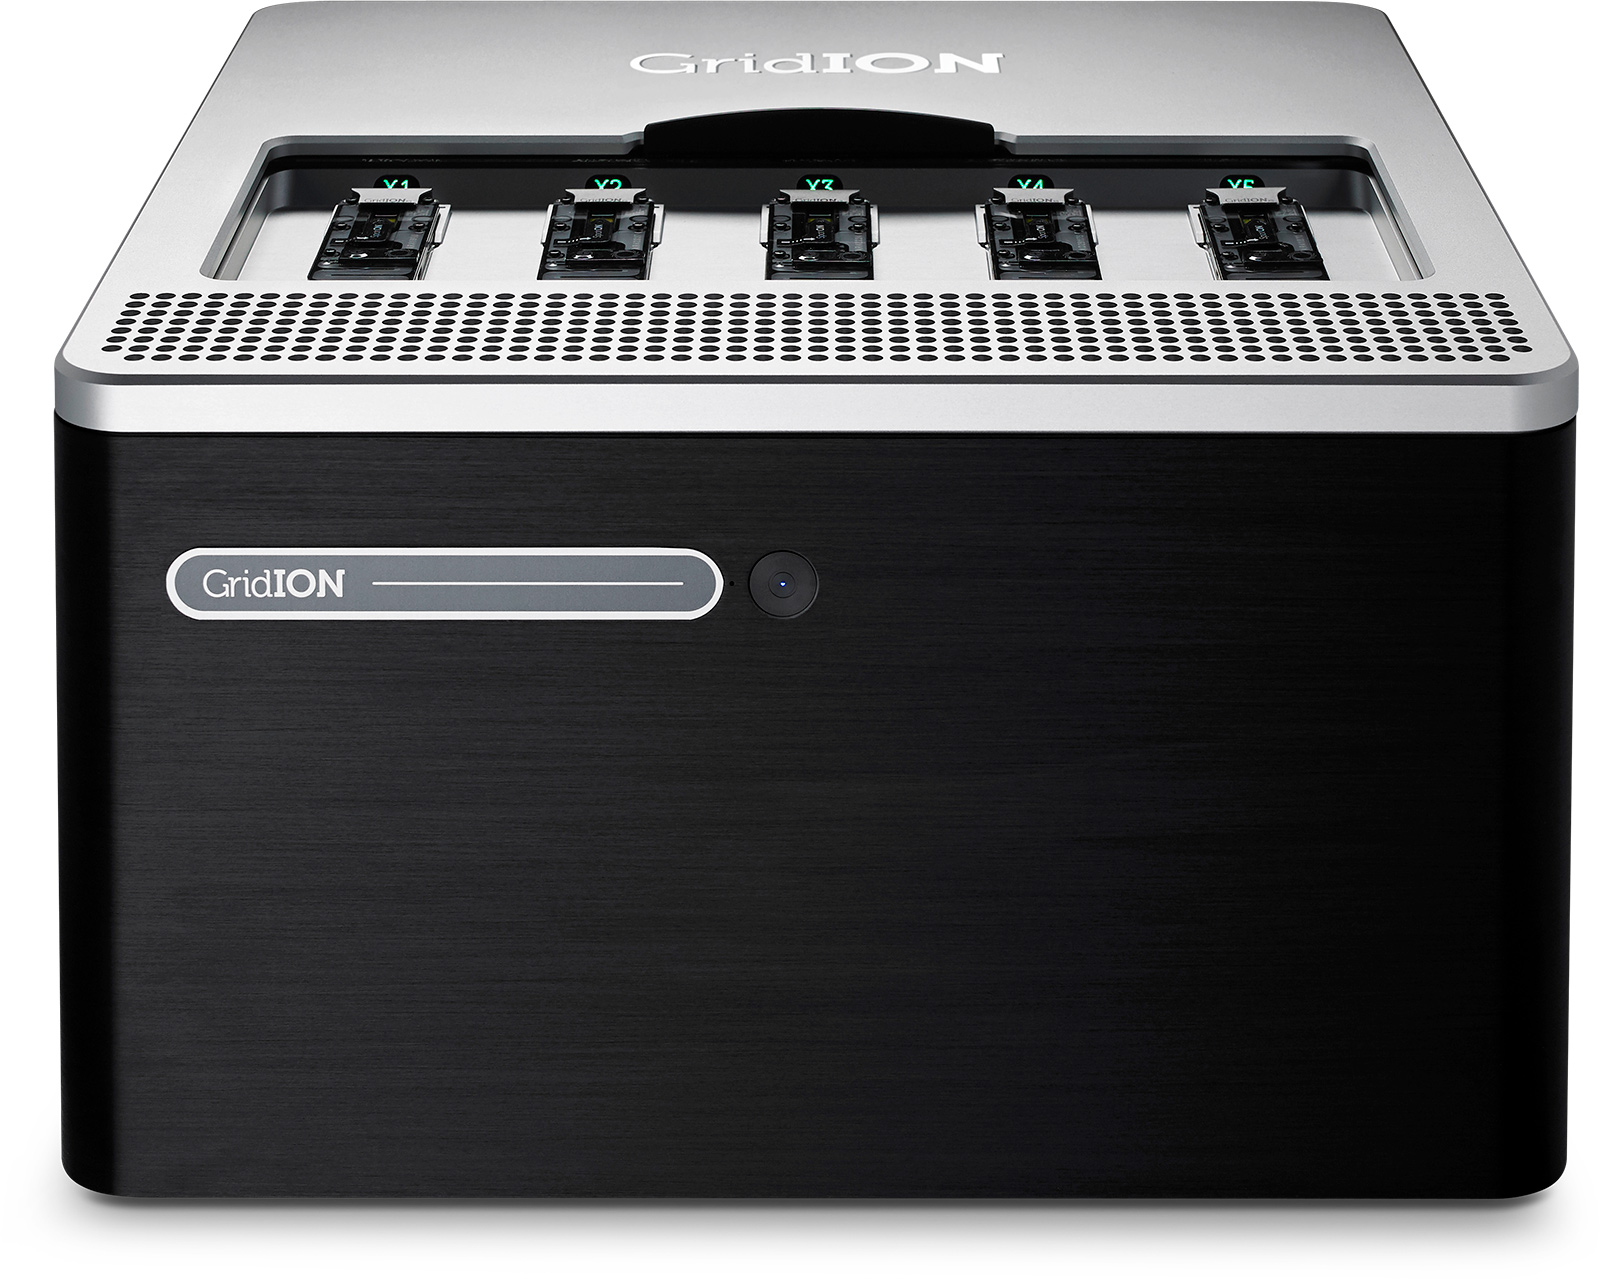 GridION nanopore sequencing device